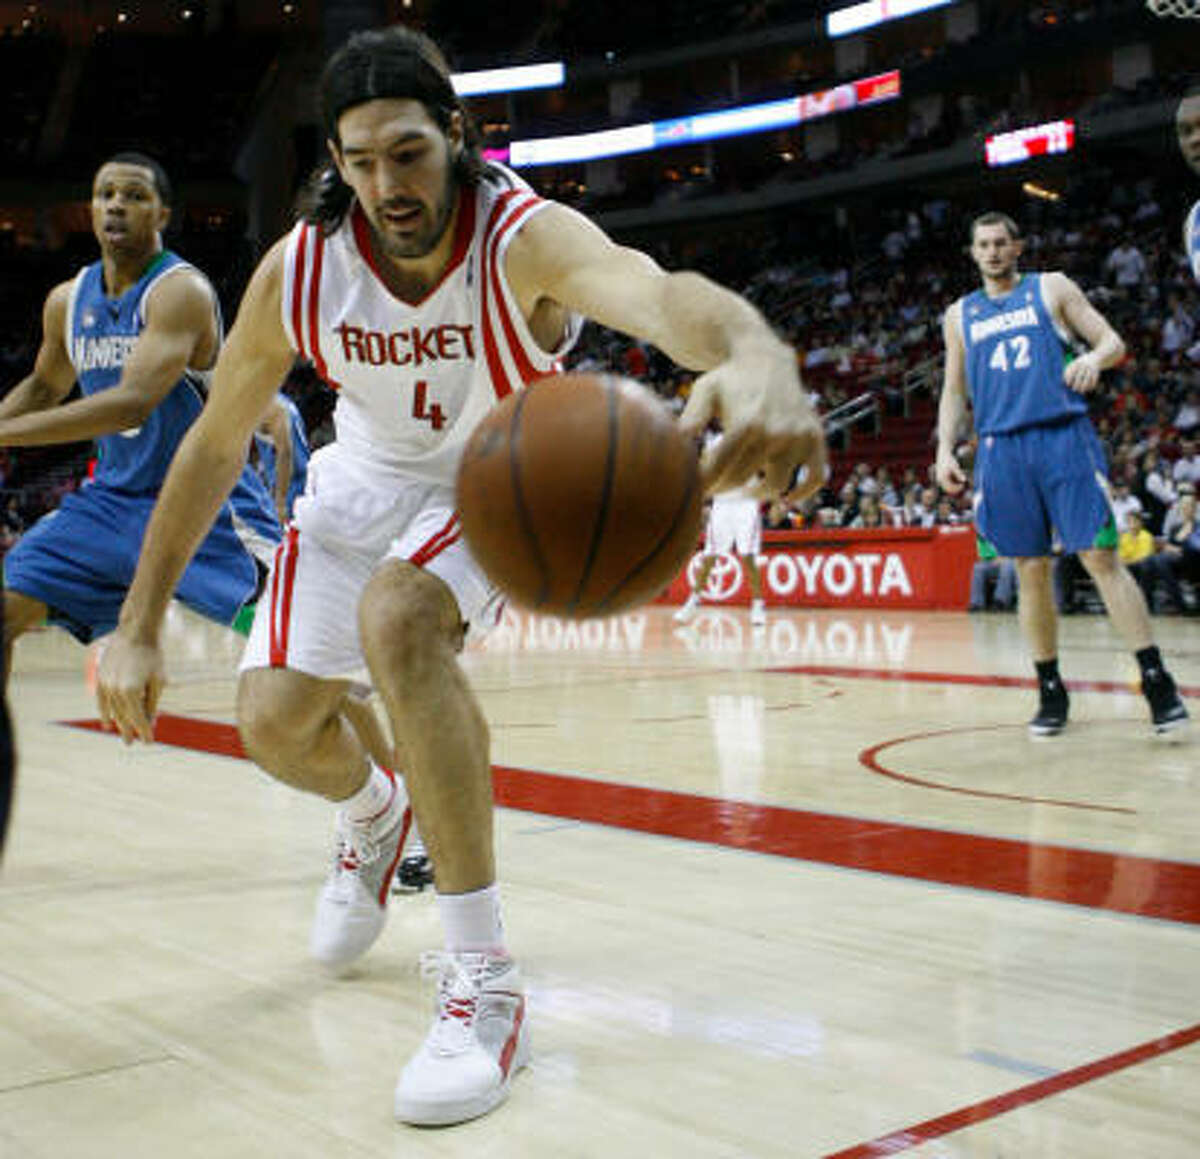 Luis Scola tries to keep the ball from rolling out of bounds in the first quarter.